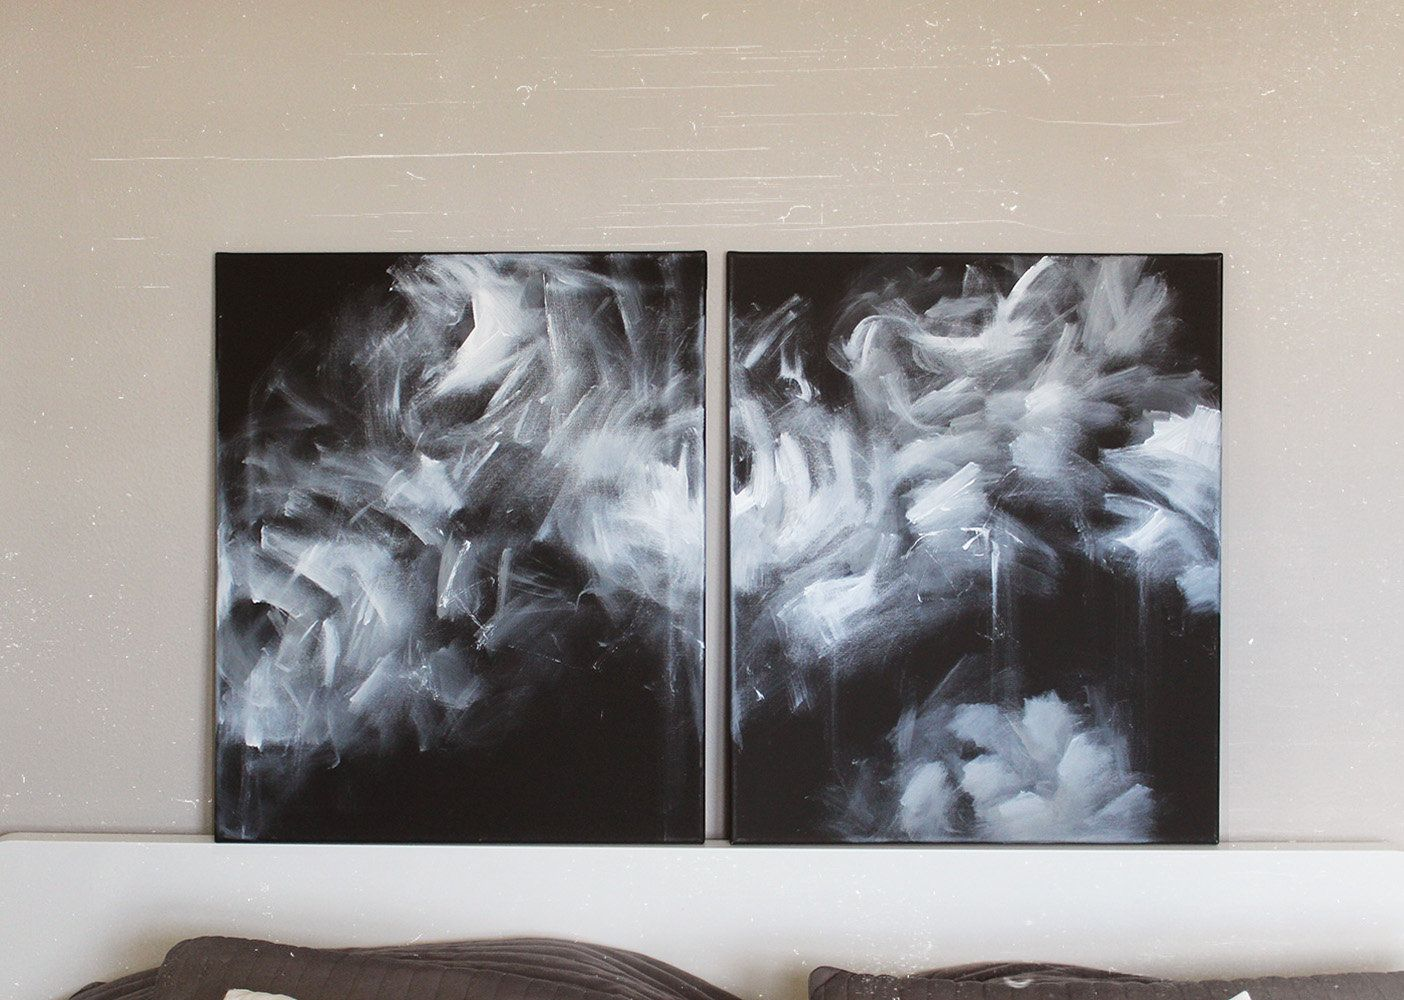 2 Piece 24x40 Total Black And White Abstract Original Canvas Painting Over Bed Paint Original Canvas Painting Large Abstract Wall Art Black And White Abstract